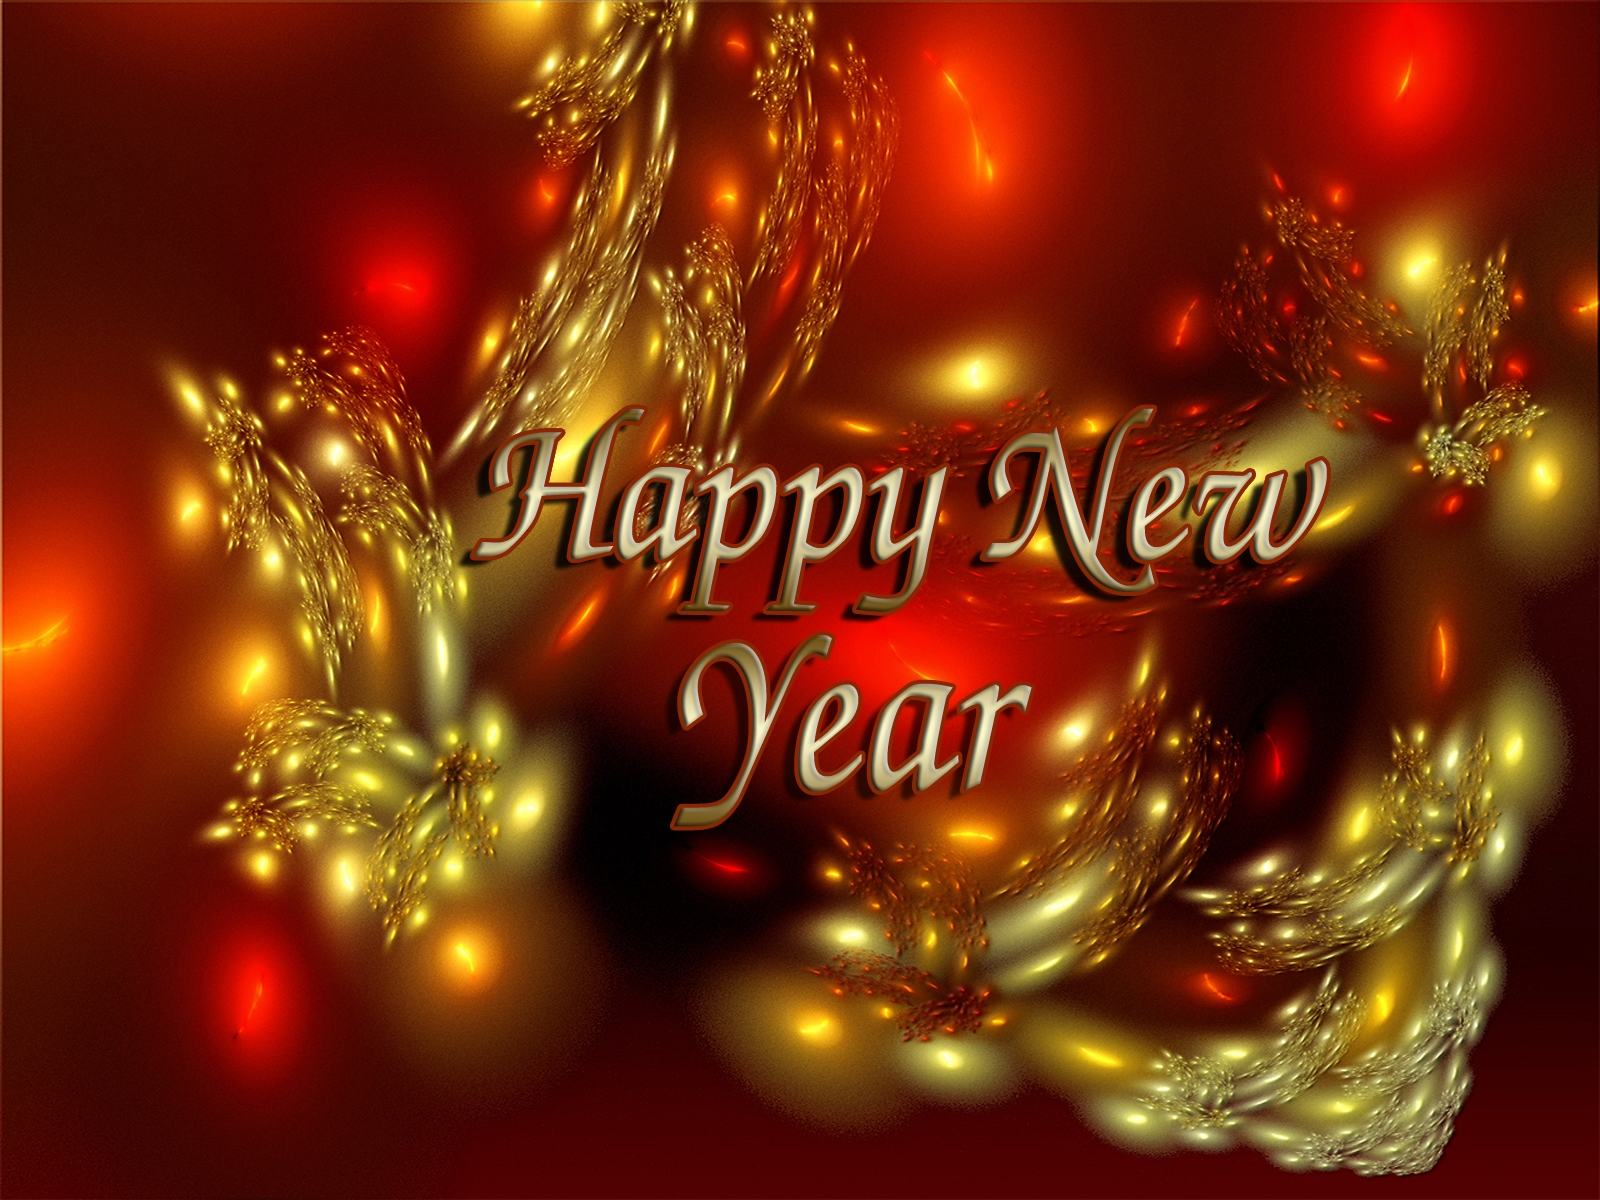 free most beautiful happy new year 2013 best wishes greeting photo cards 011